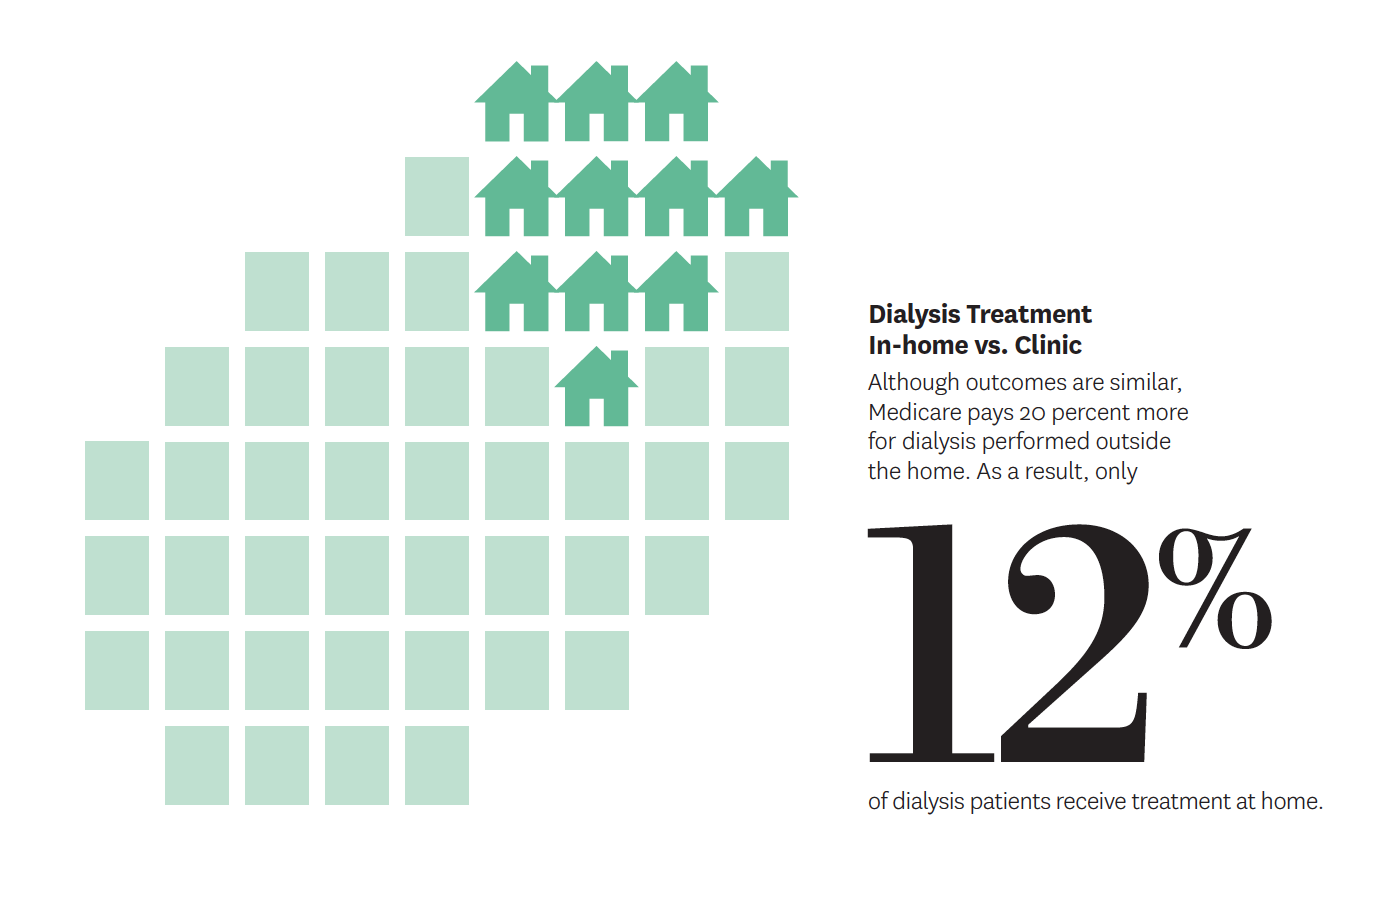 Only 12% of patients on dialysis receive treatment at home. Medicare pays physicians 20% more